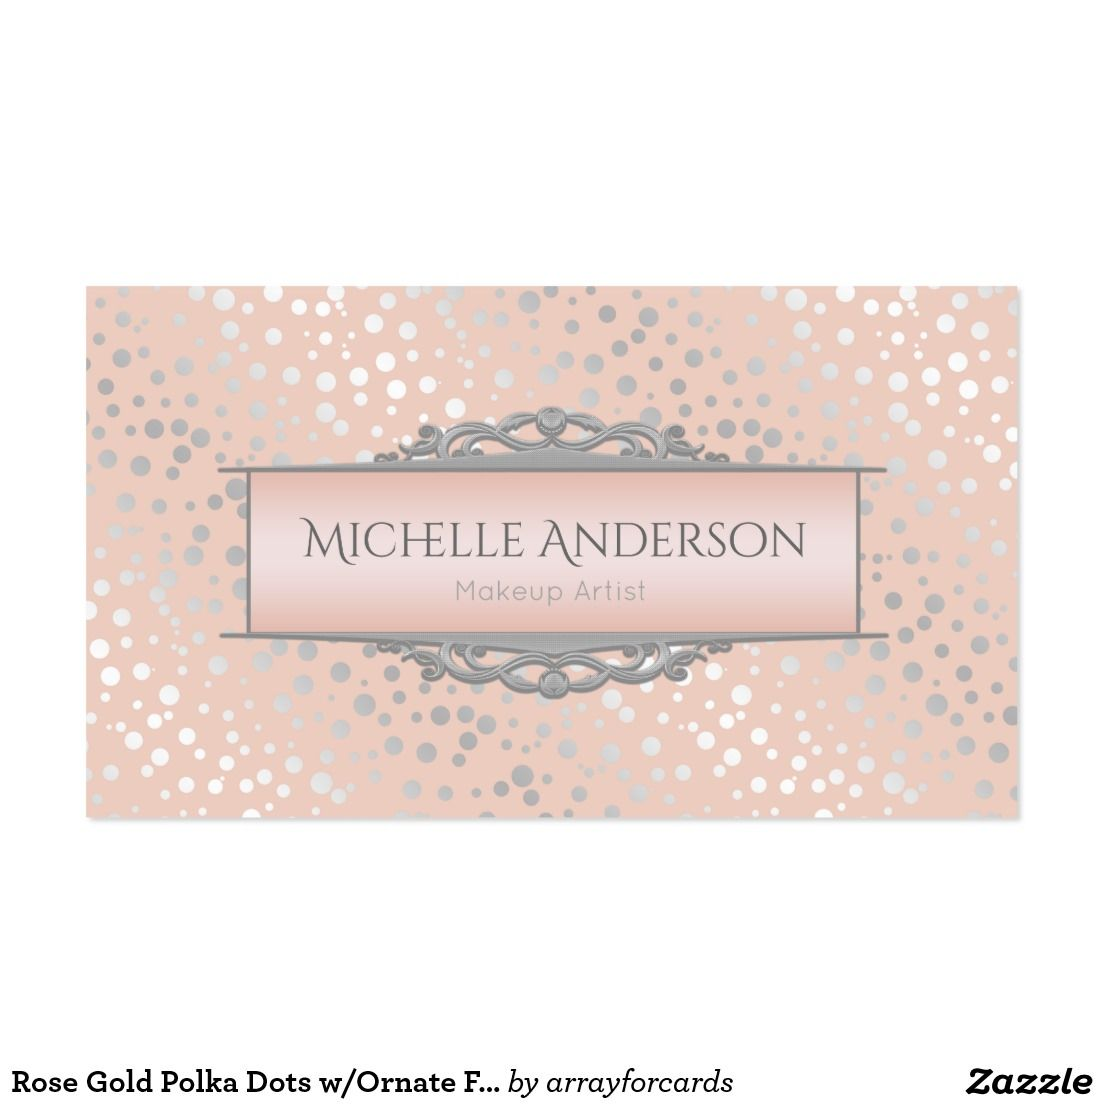 Girly Business Cards Gallery - Business Card Template